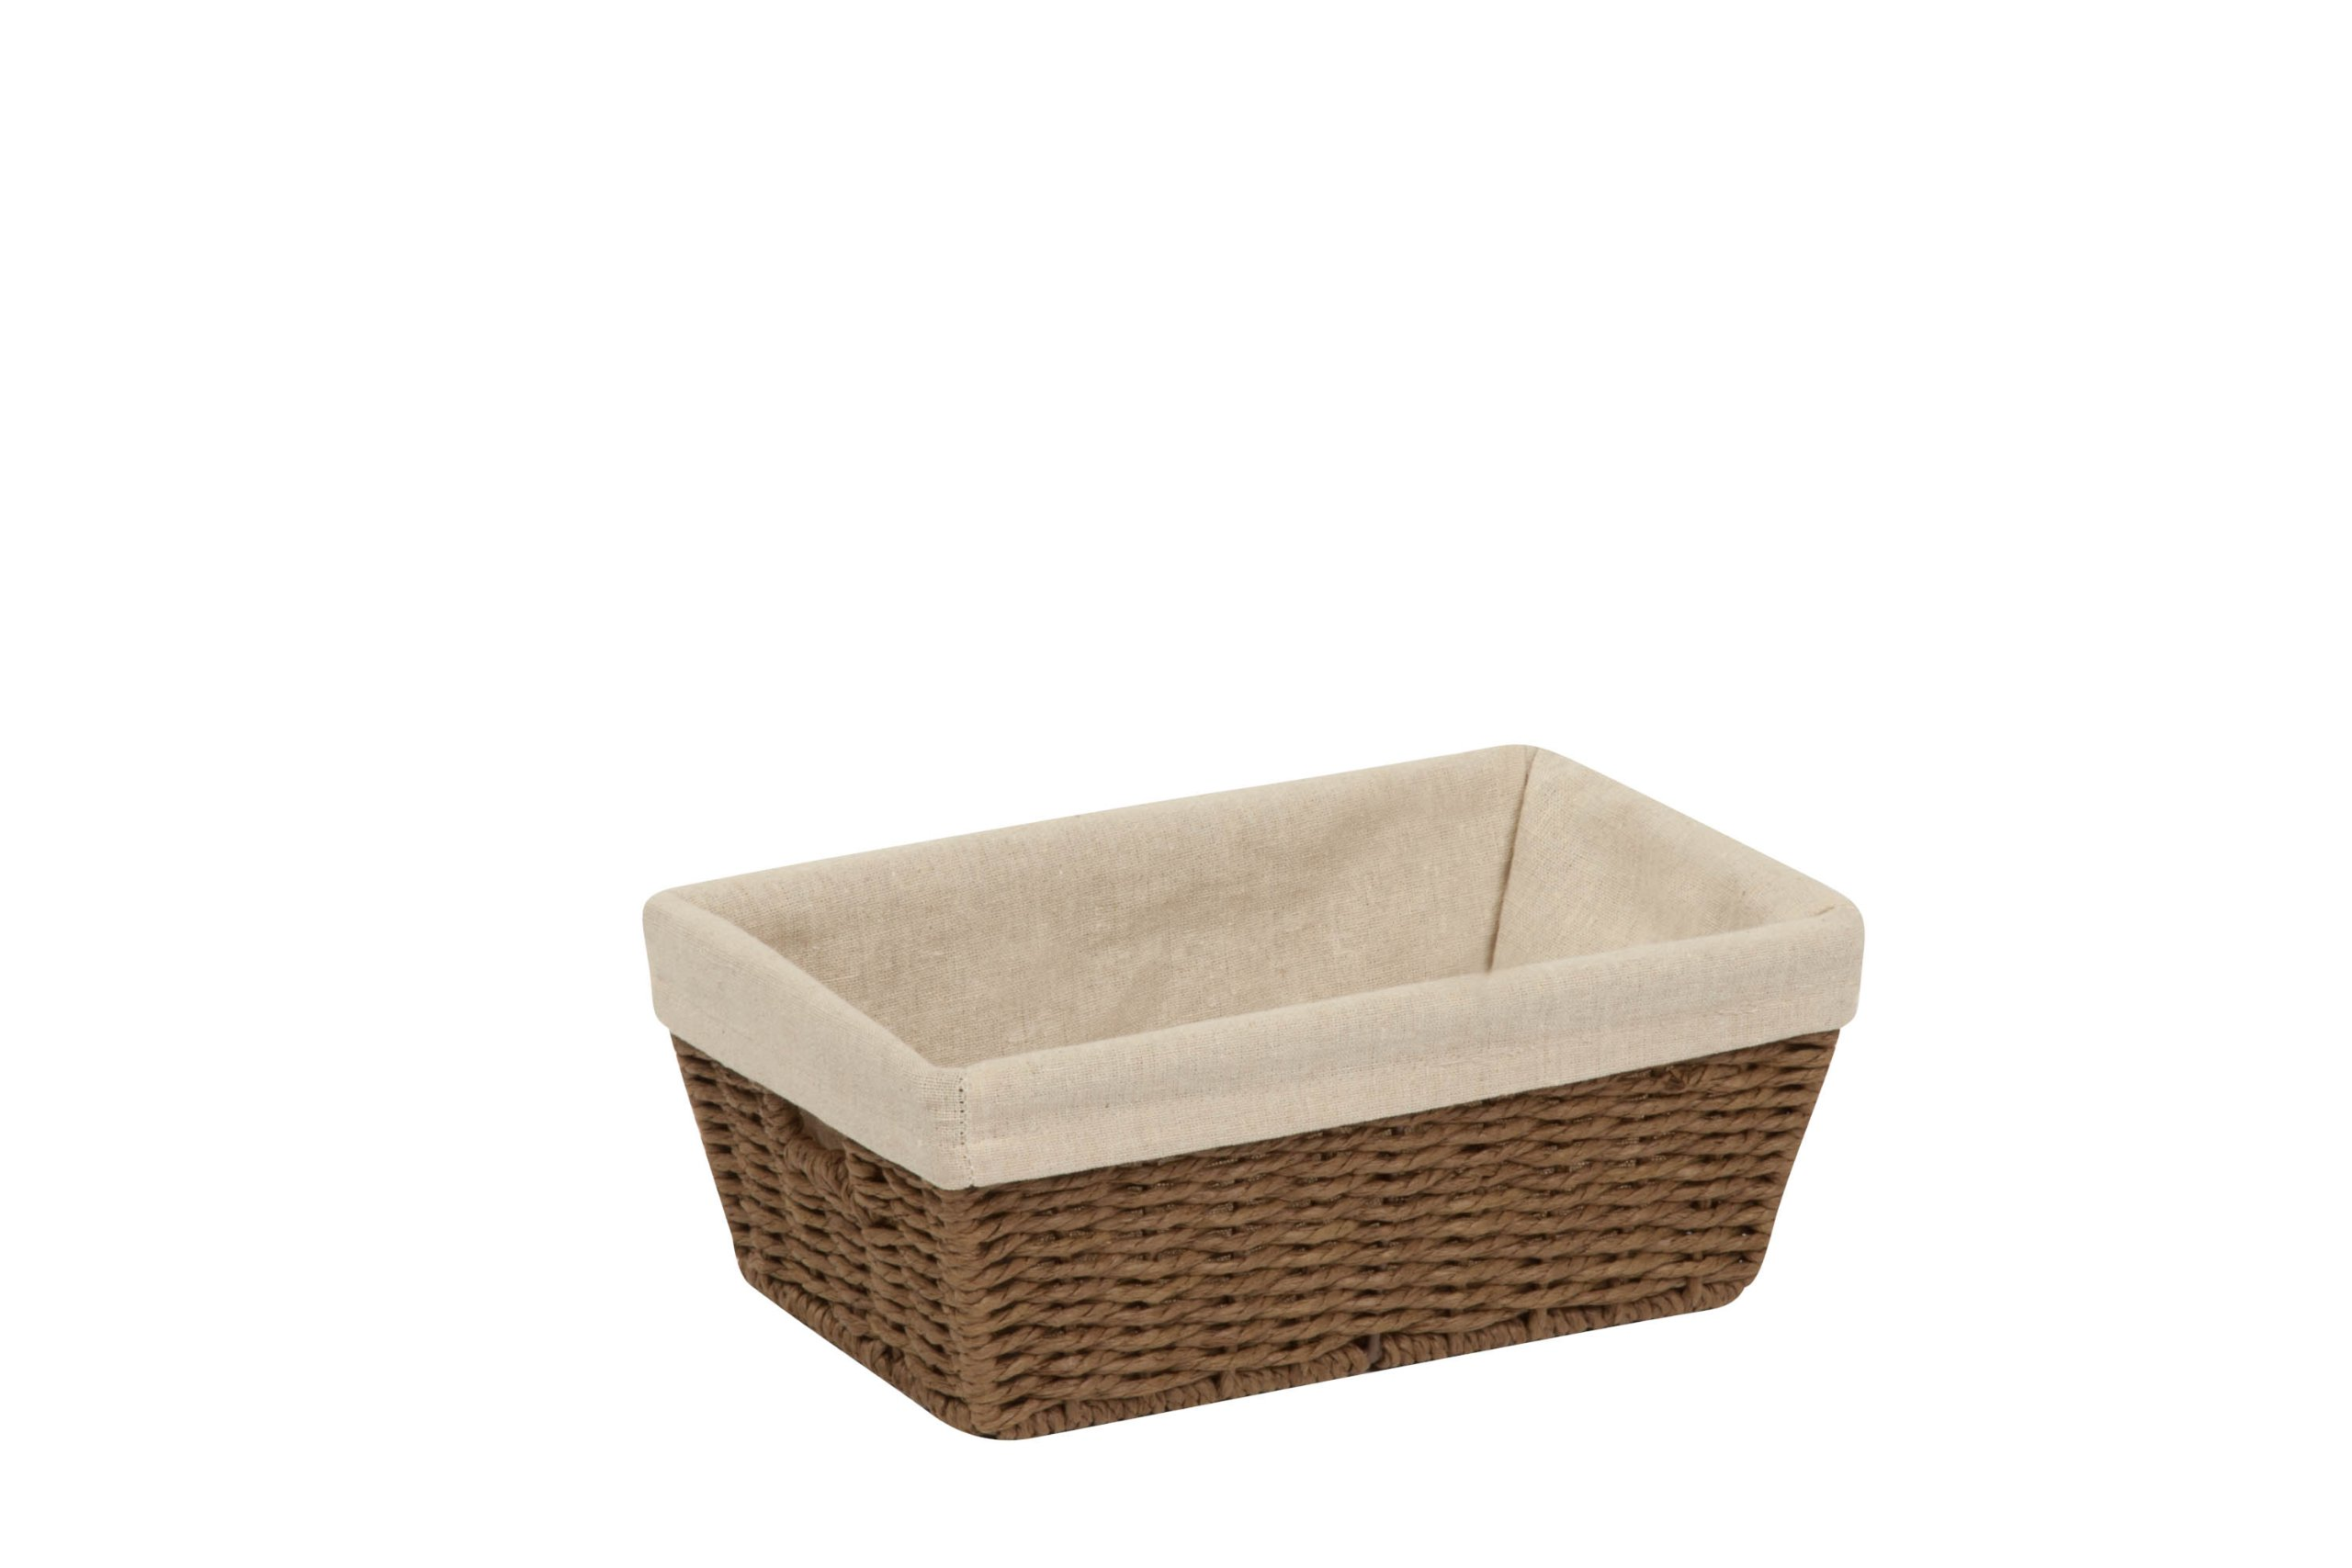 Honey-Can-Do STO-03563 Parchment Cord Basket with Handles and Liner, Brown, 6.89 x 11 x 4.5 inches by Honey-Can-Do (Image #1)